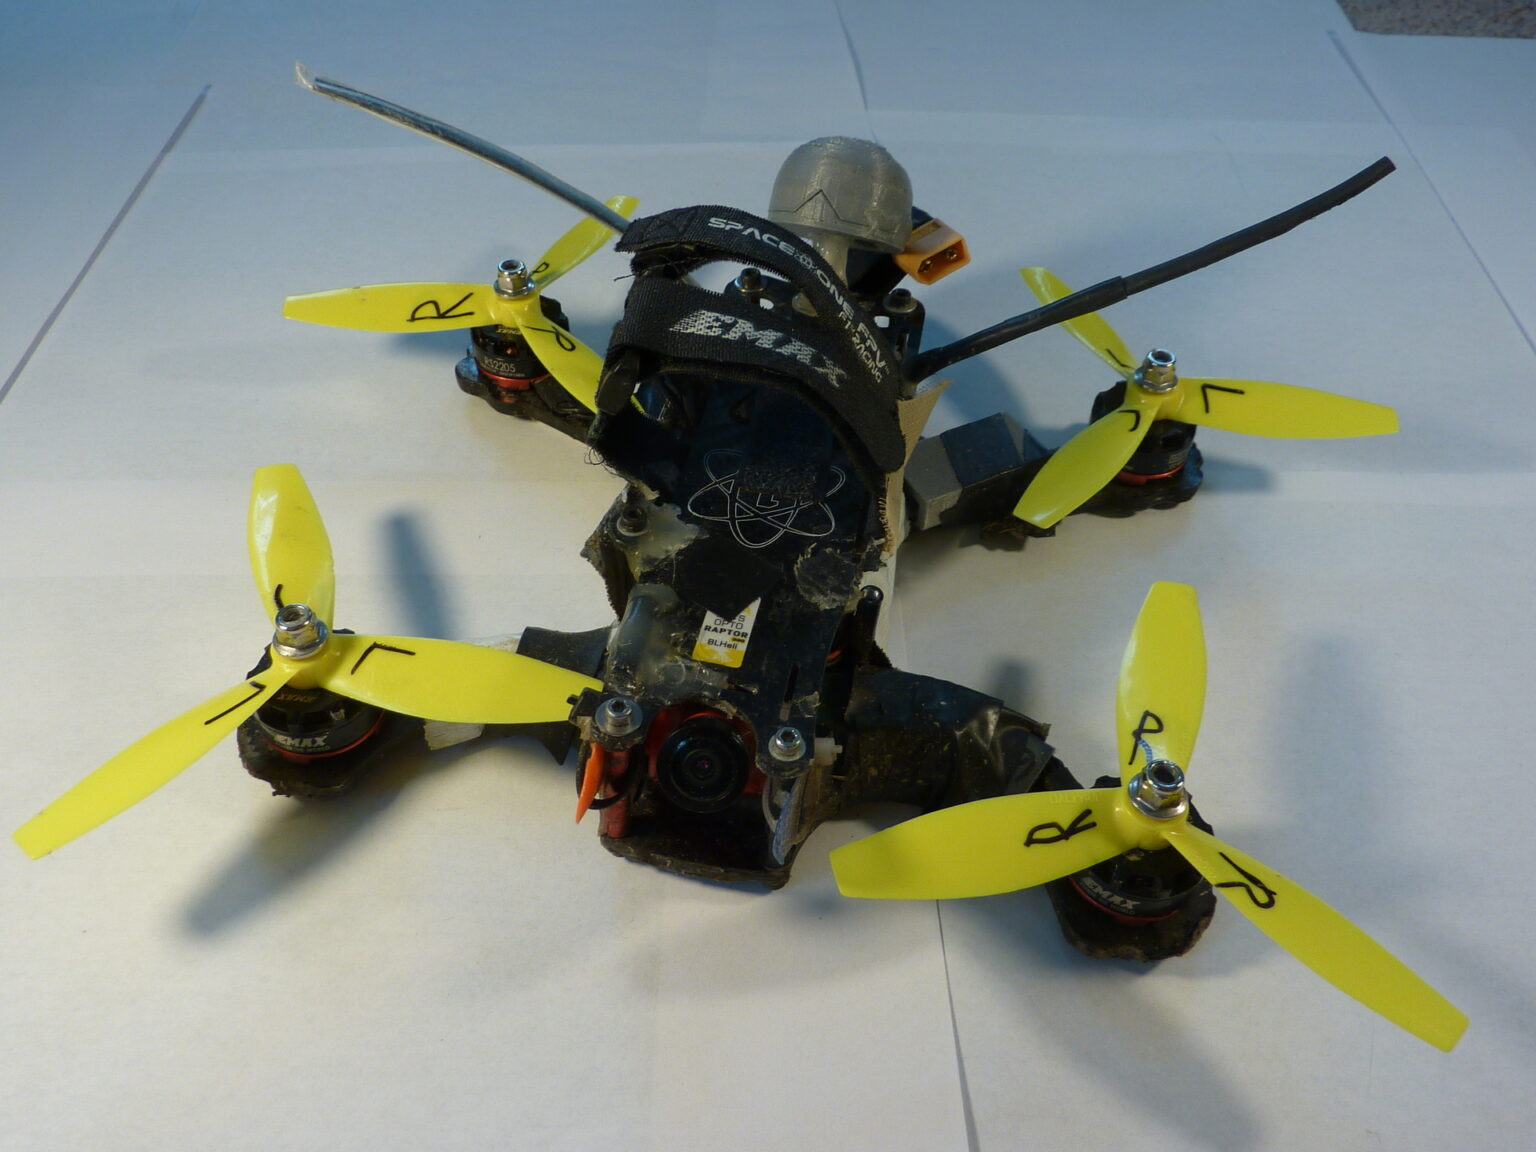 Current version racing drone